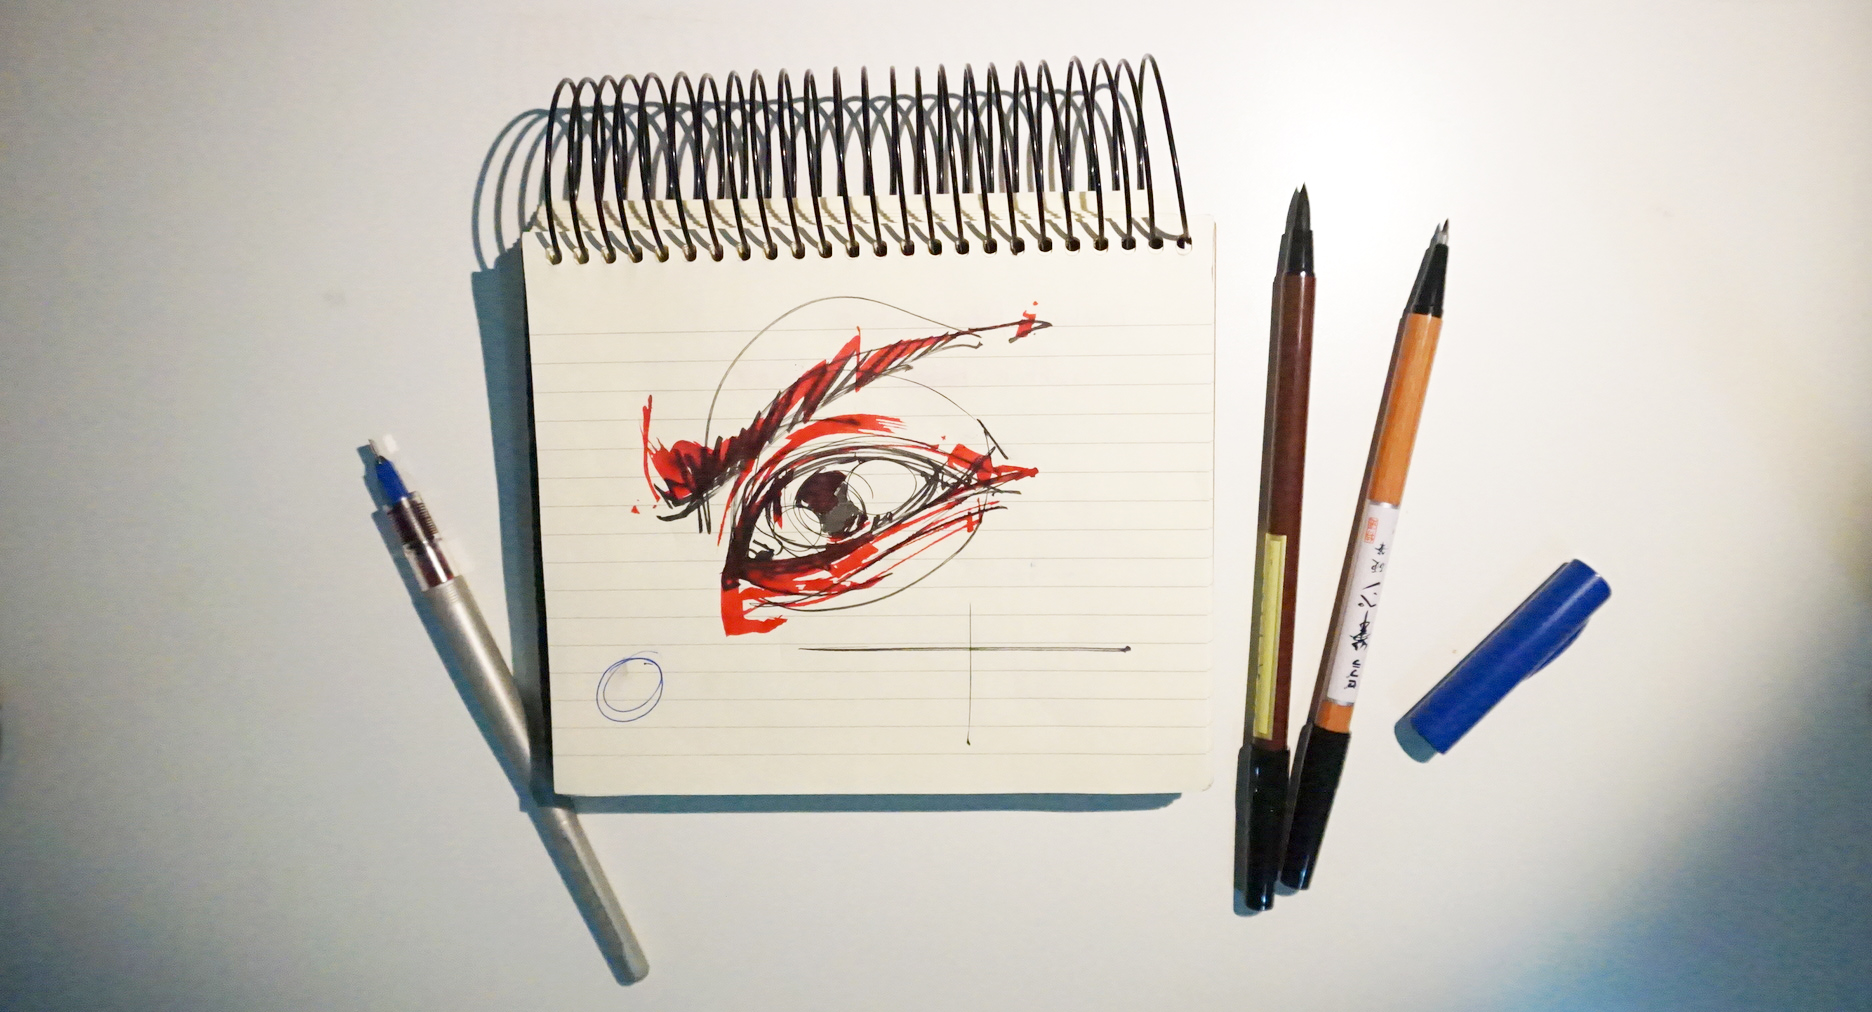 eye-calligraphy-pilot-parallel-theDesignSketchbook-a